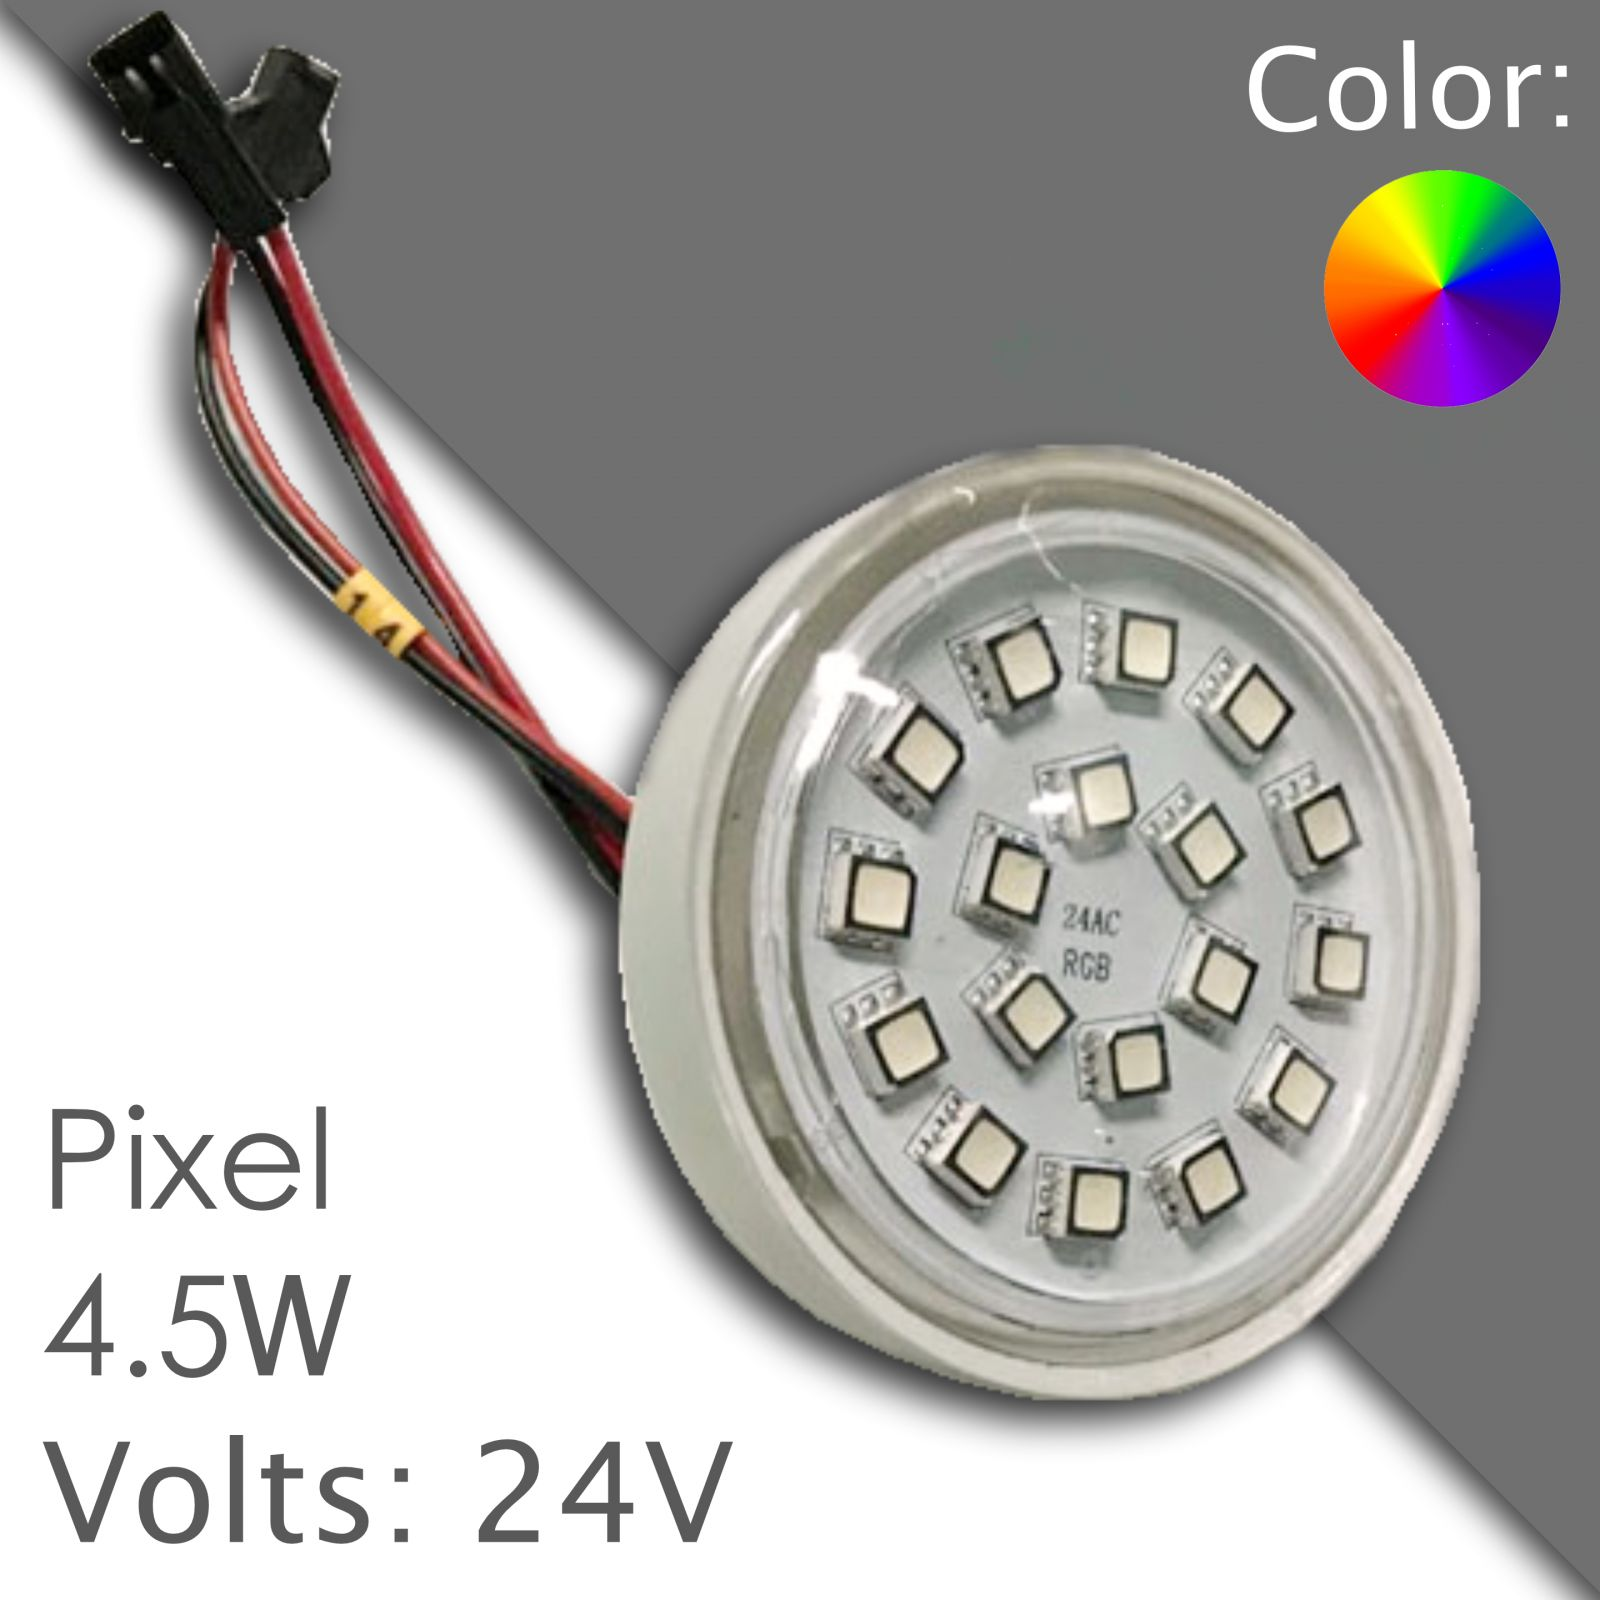 Led pixel rgb 60mm programmable, waterproof